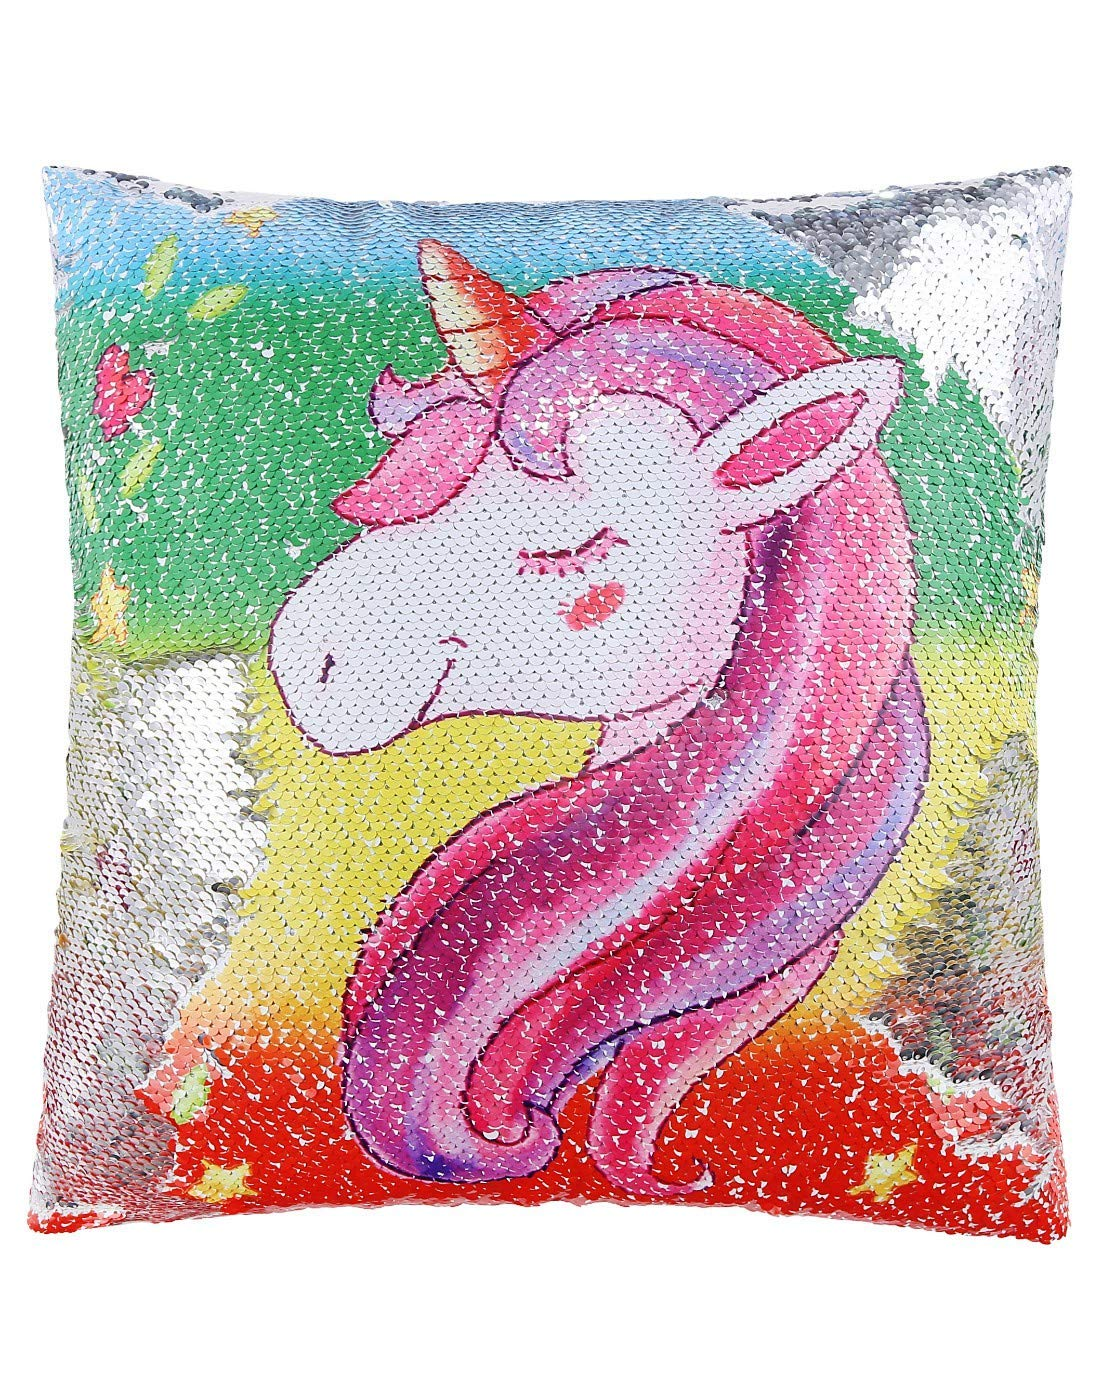 b18a169b5 Get Quotations · ANKIT Mermaid Unicorn Sequin Pillow Reversible Pillow That  Changes Color - Rainbow Pink Unicorn